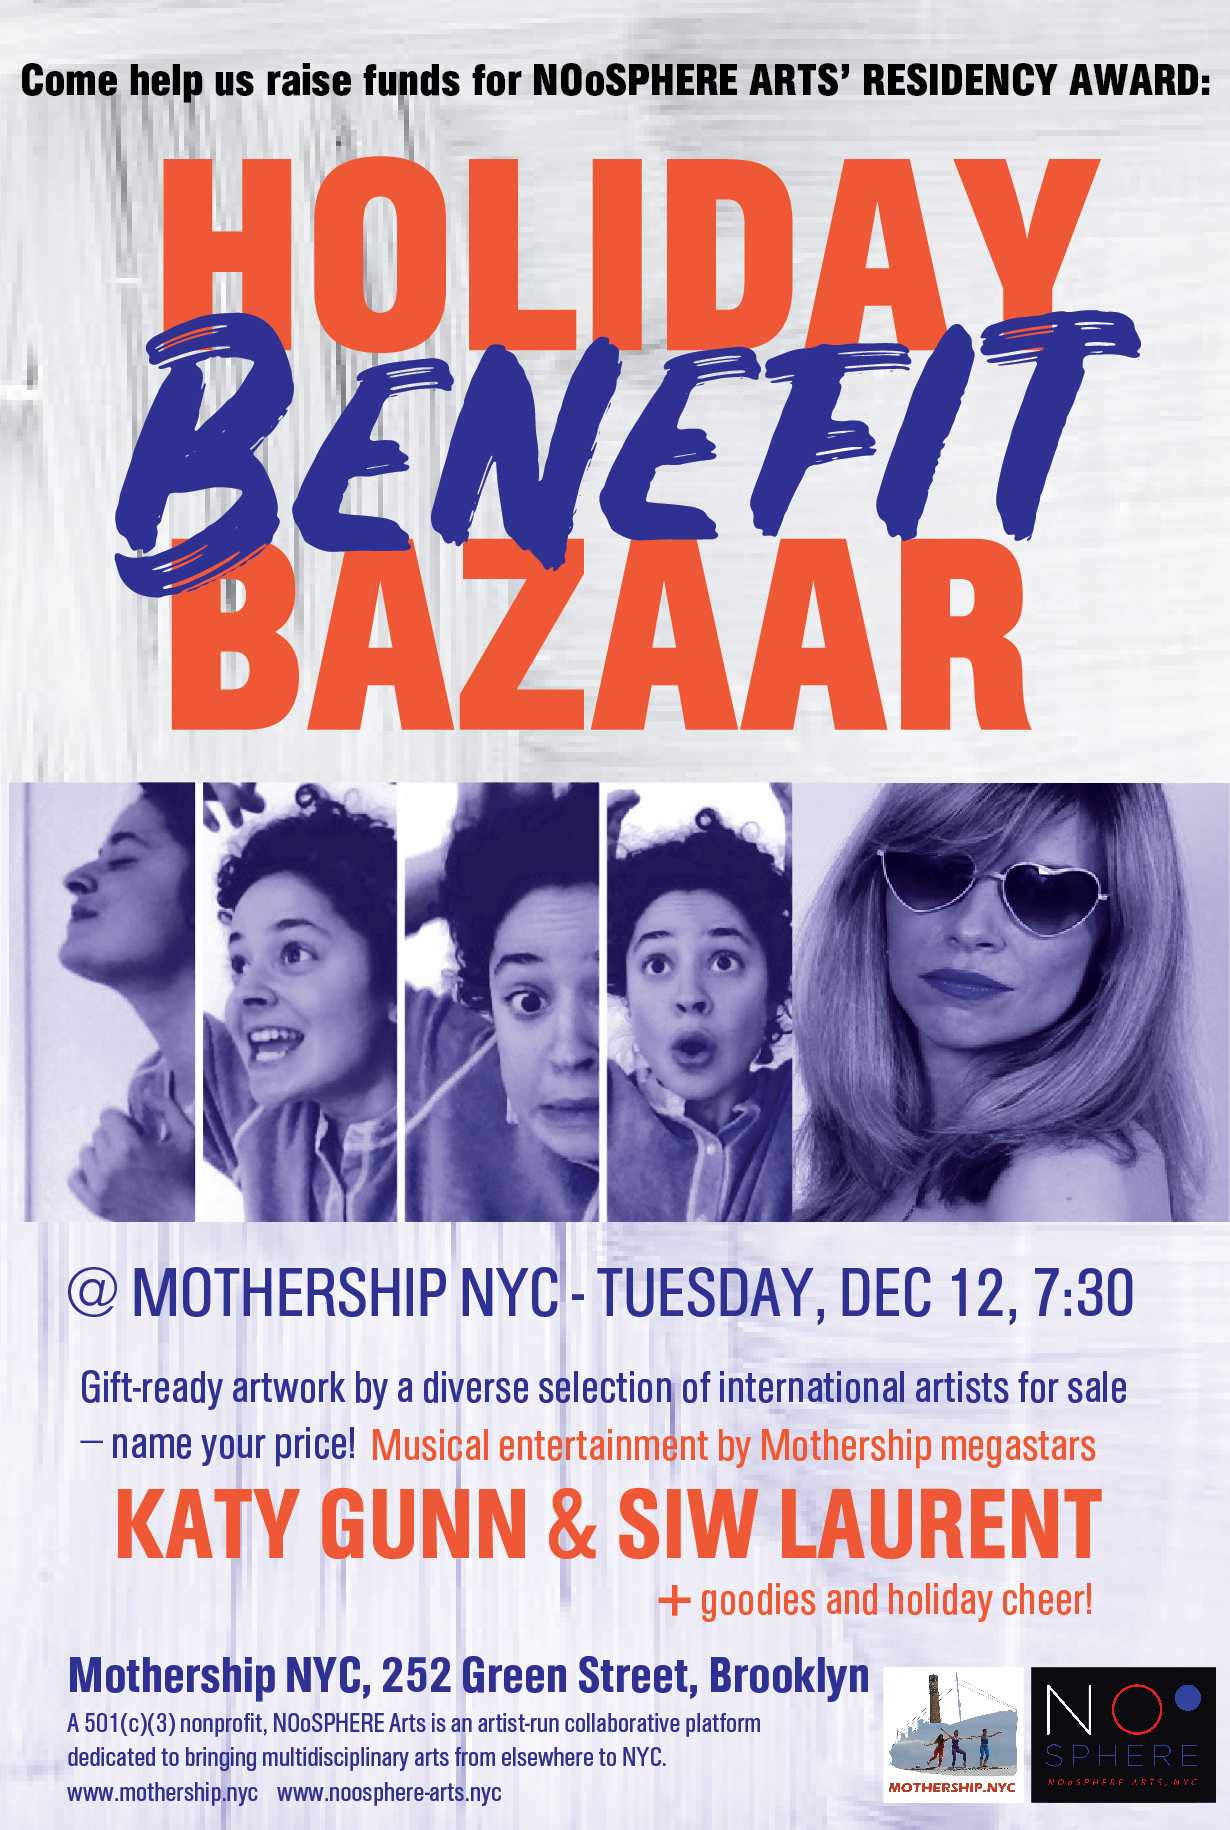 - HOLIDAY BENEFIT BAZAAR@ MOTHERSHIP NYCTUESDAY, DEC 12, 7:30Come help us raise funds forNOoSPHERE ARTS' RESIDENCY AWARD: Gift-ready artwork by a diverse selection of international artists for sale – name your price! Musical entertainment by Mothership megastars Katy Gunn and Siw Laurent, goodies and holiday cheer!